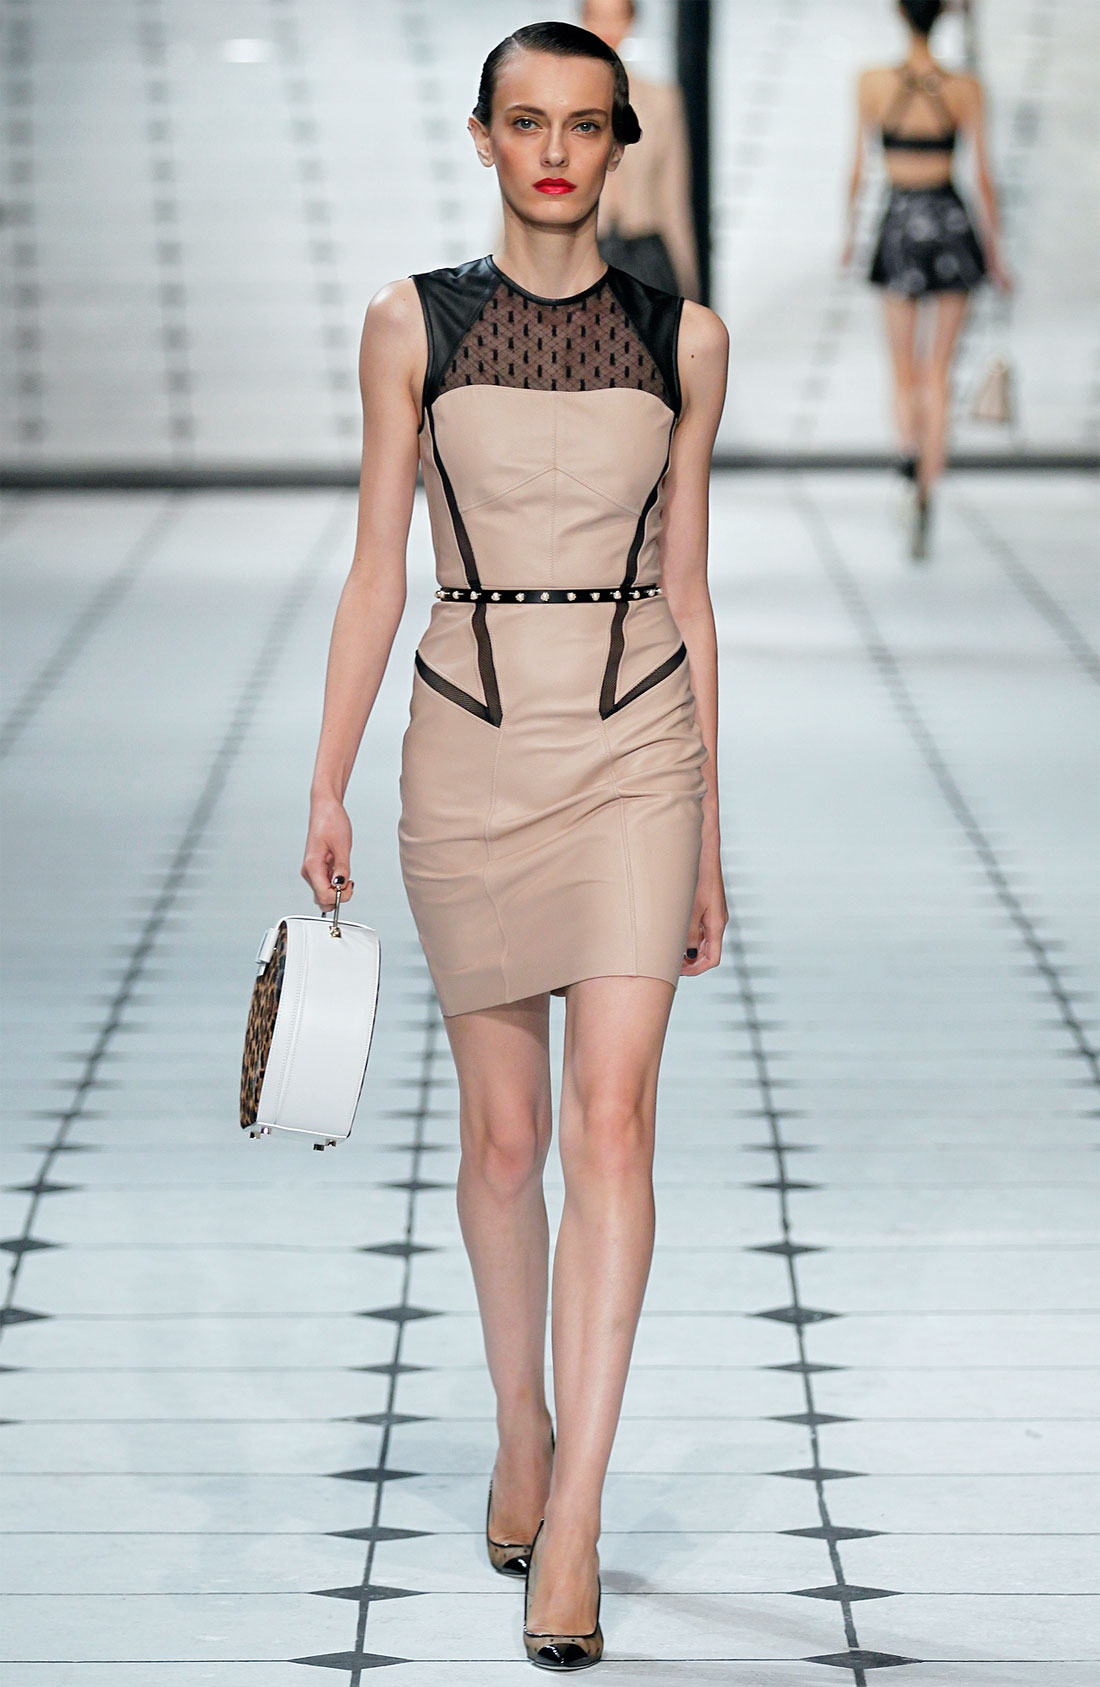 Jason Wu Dresses On Sale View Fullscreen